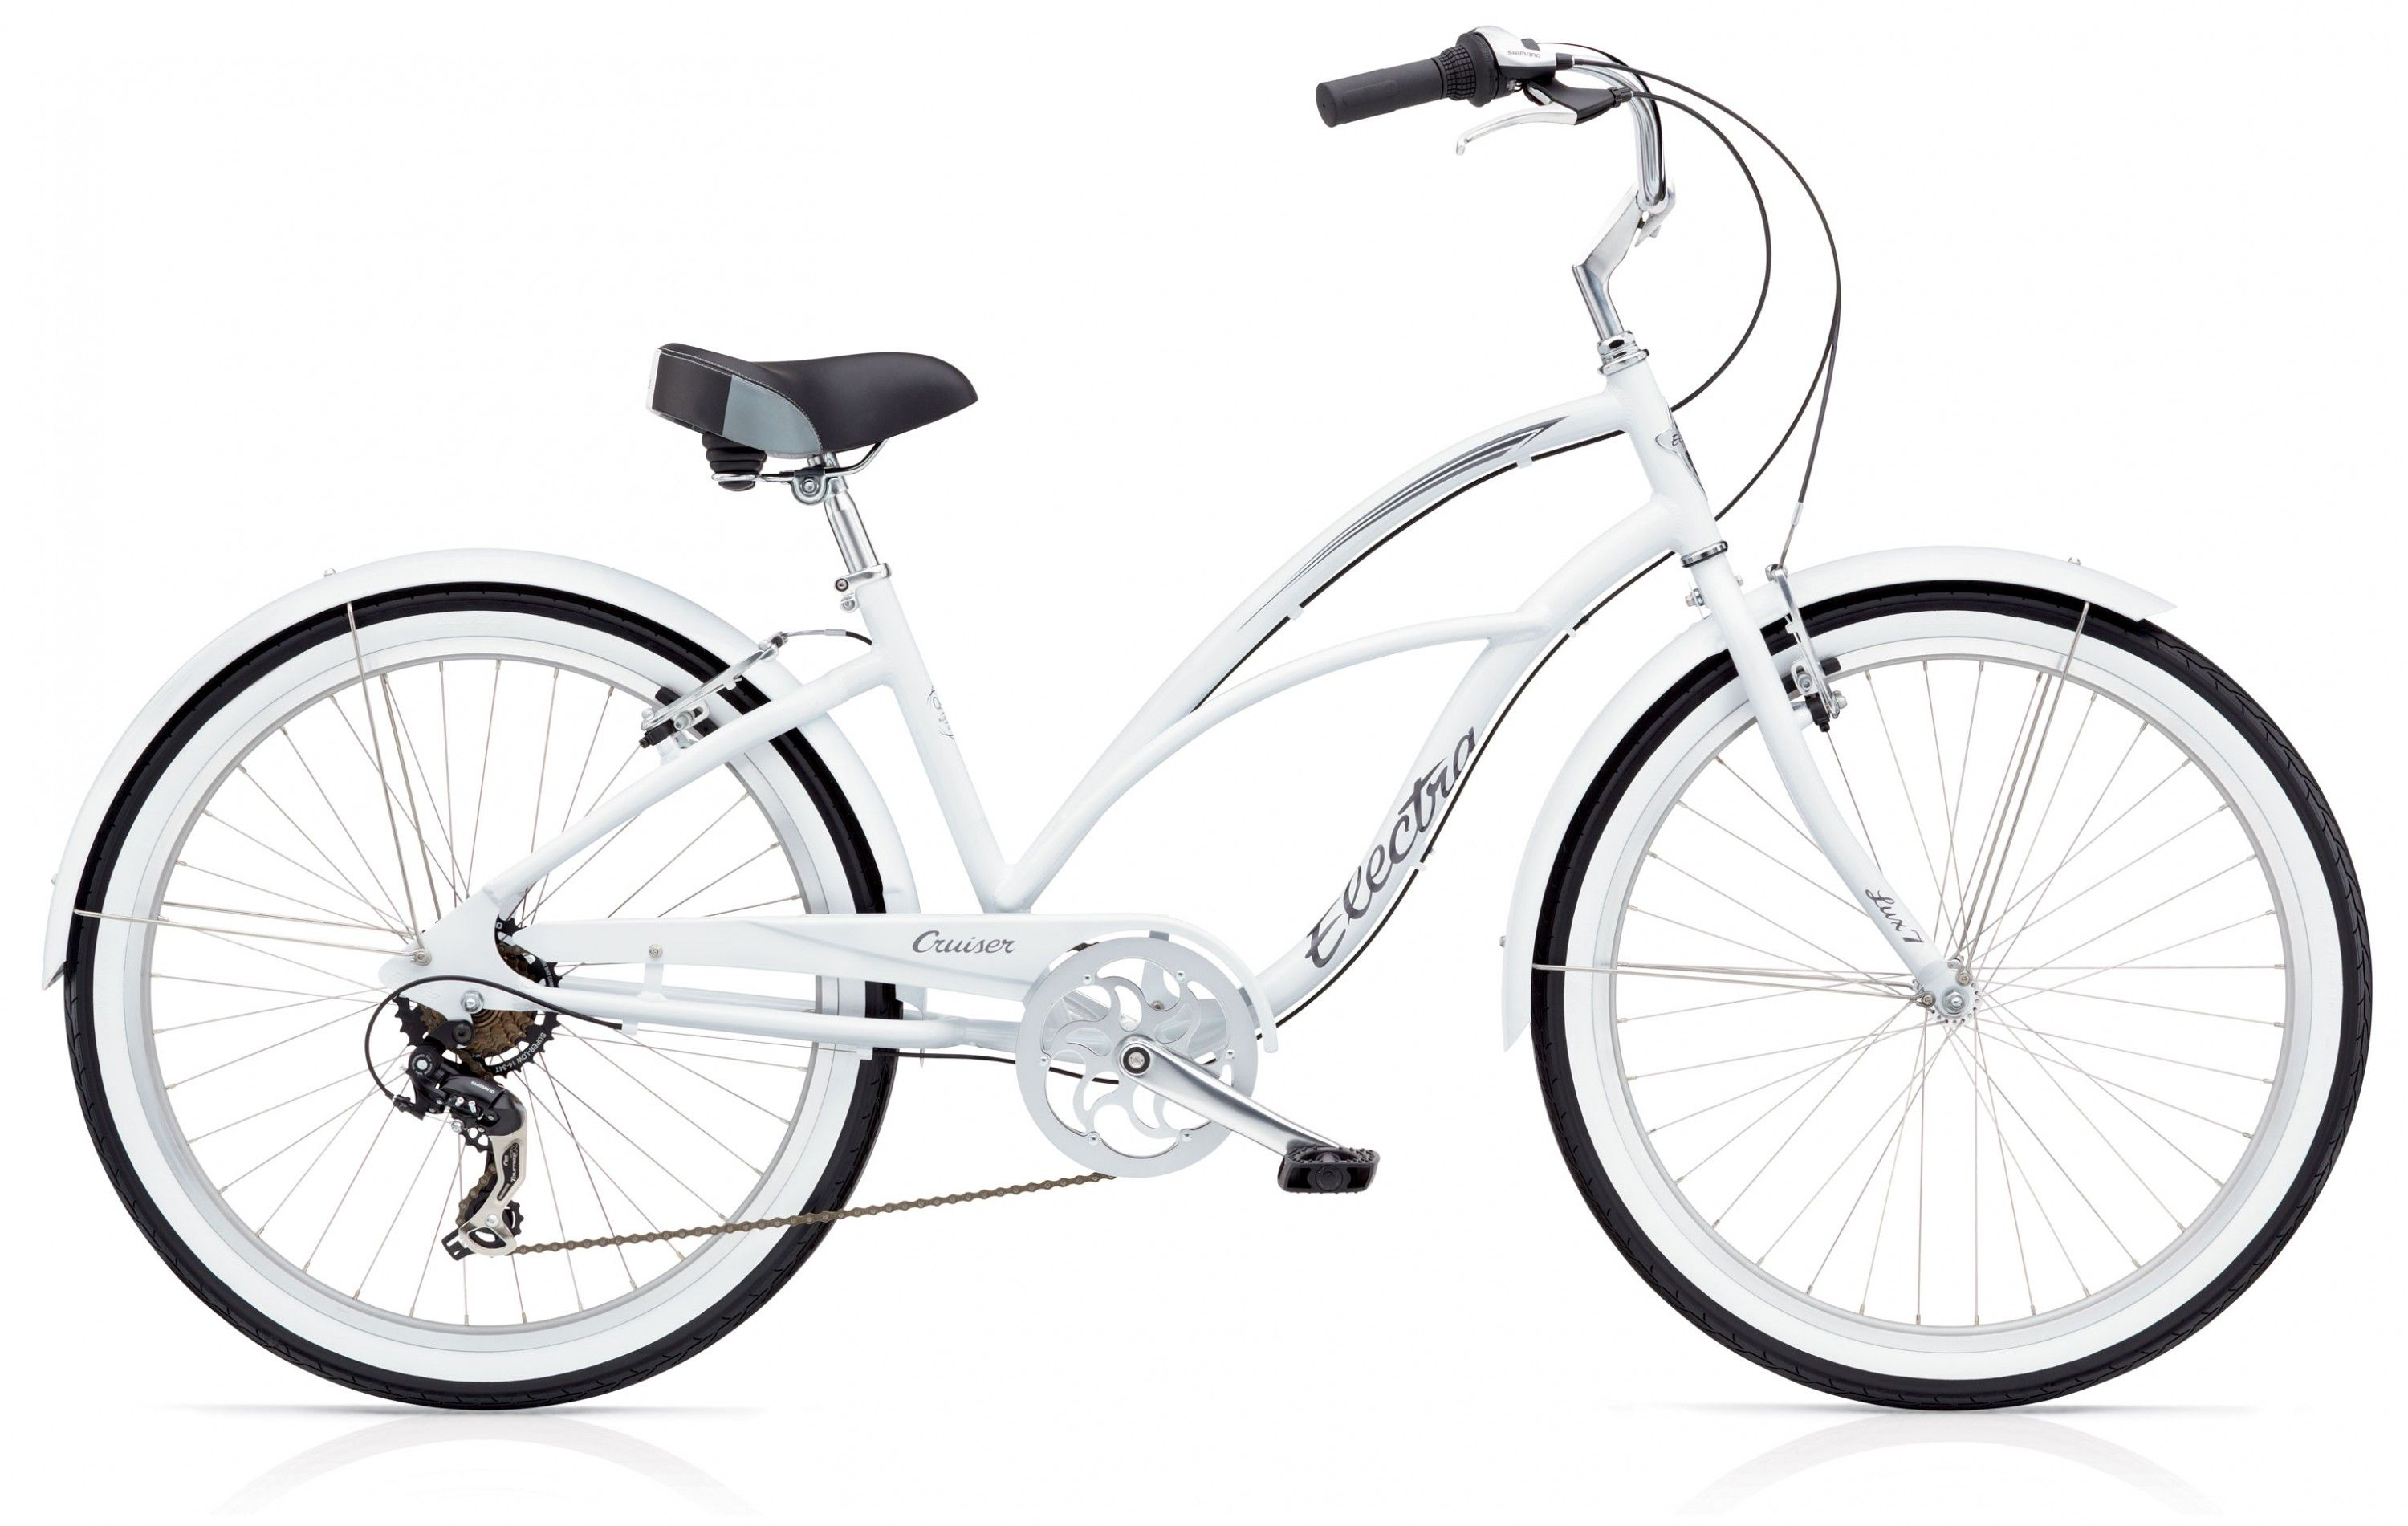 Cruiser Lux 7d Electra Bicycles Cruiser Bicycle Bicycle